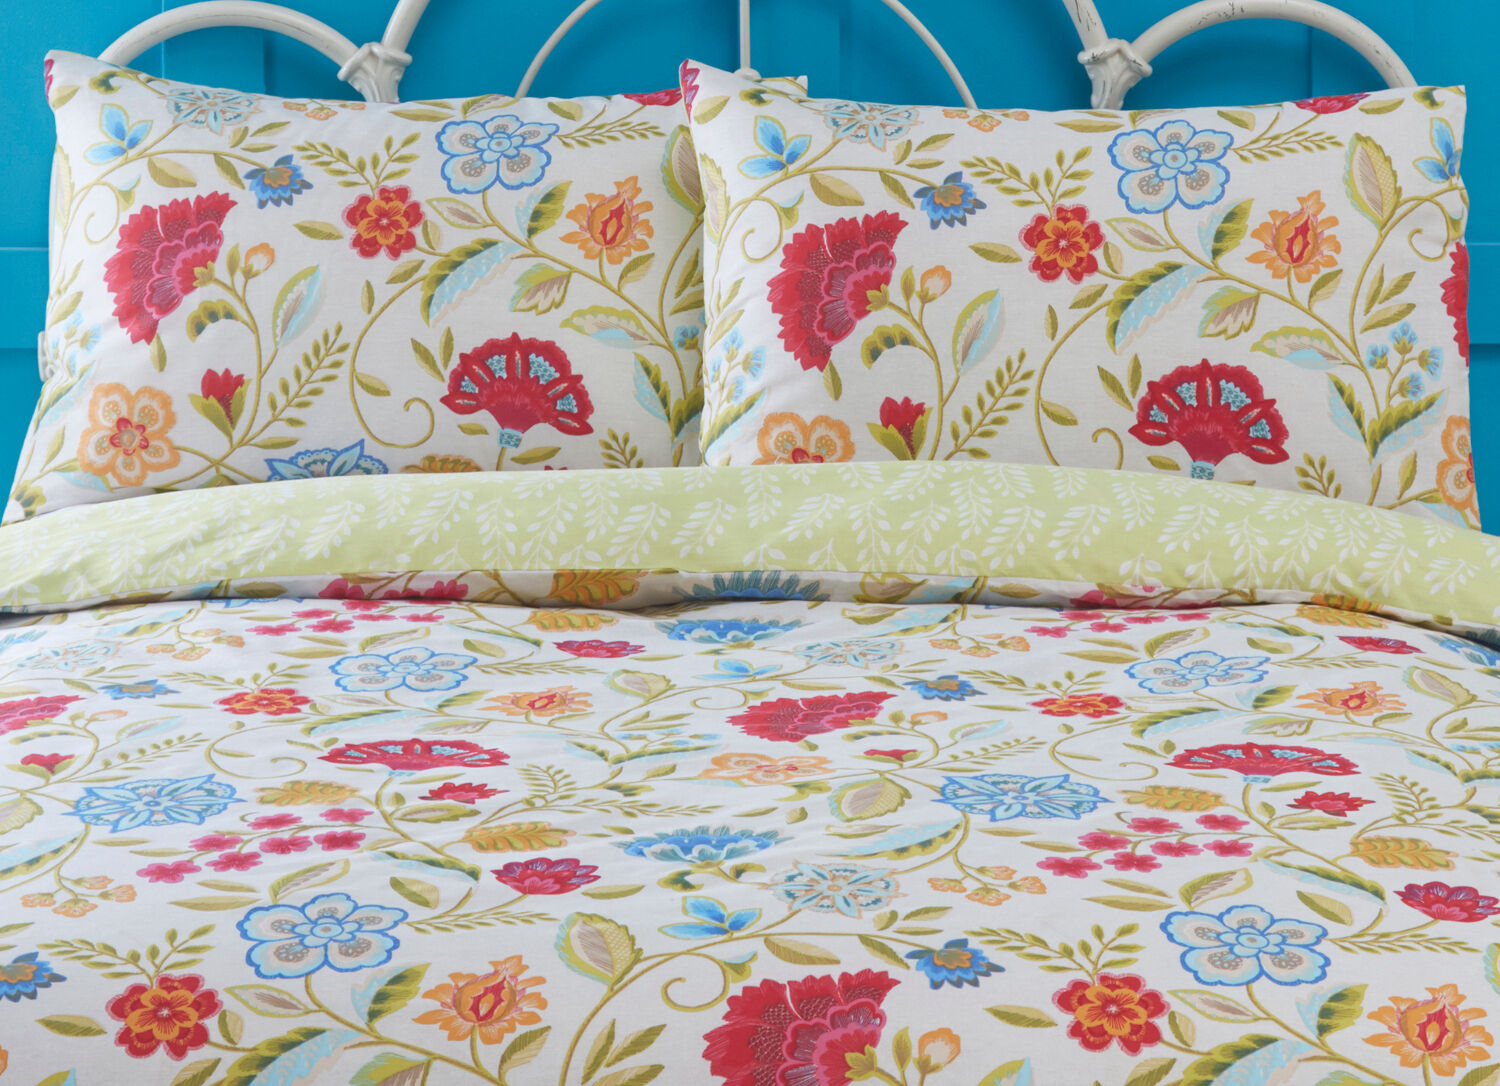 Bedding Irvine Cream Bedding Set Floral Leaves Print Fuchsia Lime Green Orange Blue Rev Home Furniture Diy Tohoku Morinagamilk Co Jp